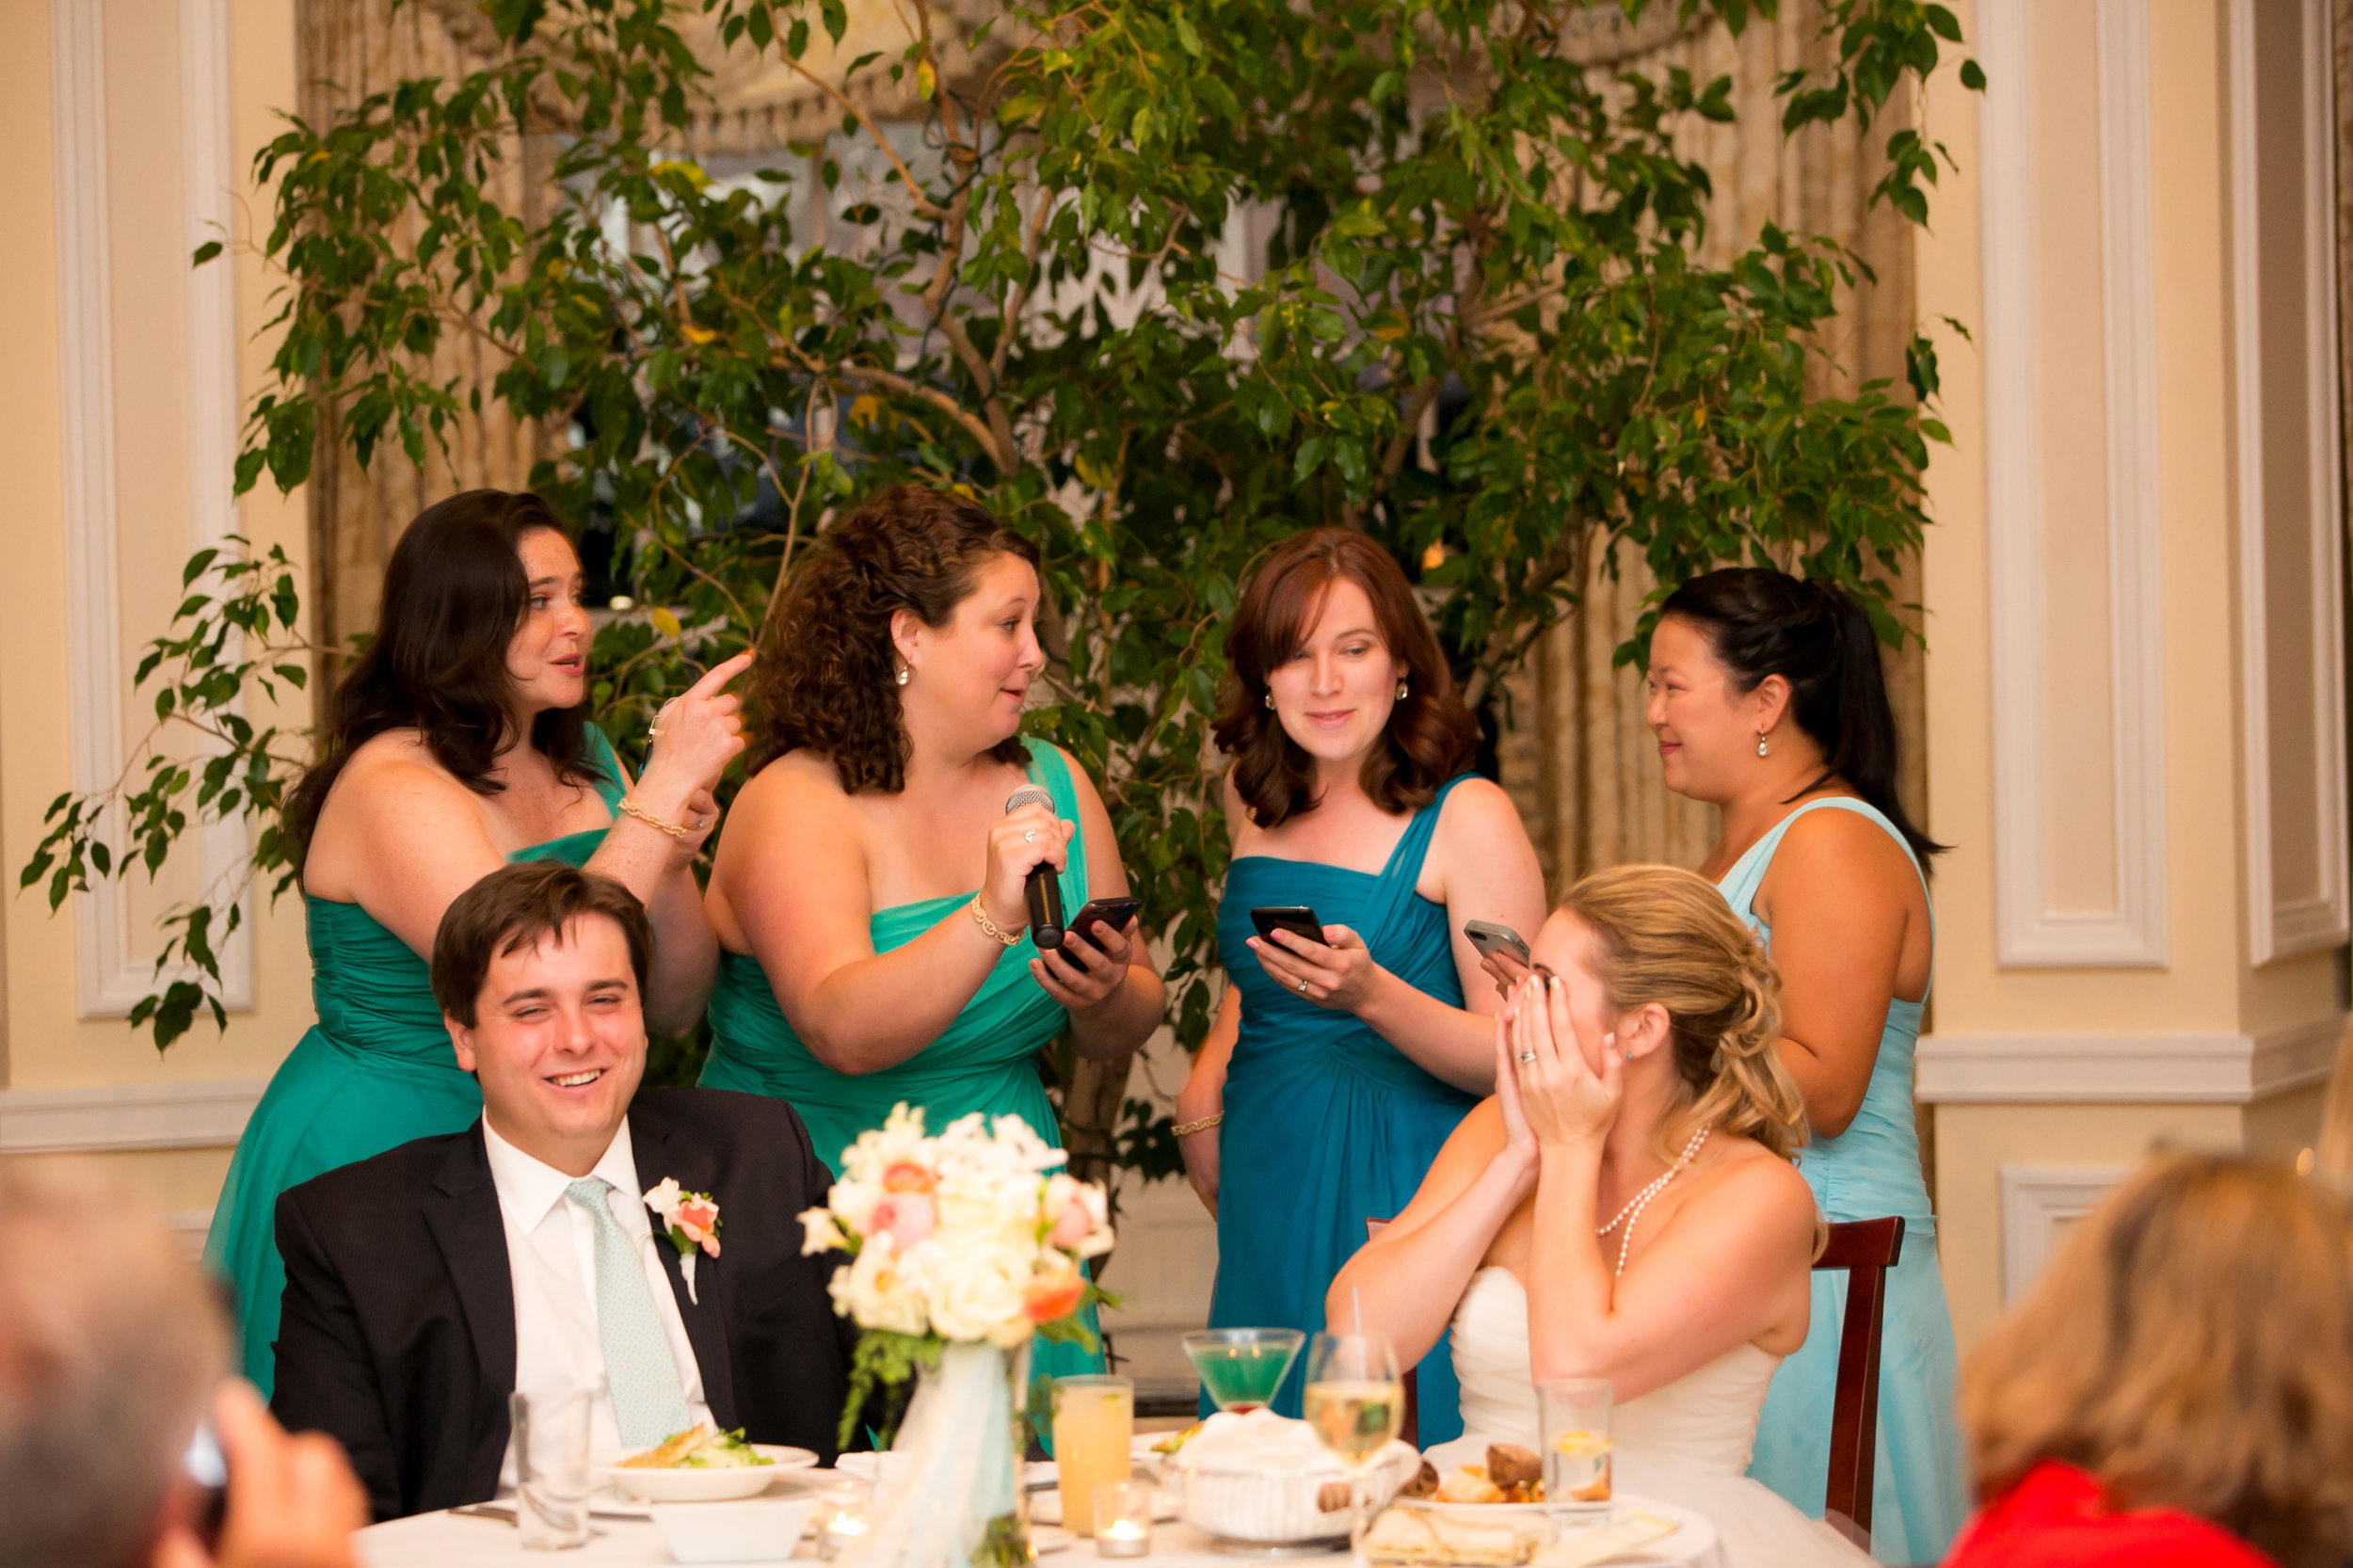 Vness-Photography-Chevy-Chase-Country-Club-A&R-Wedding-621.jpg